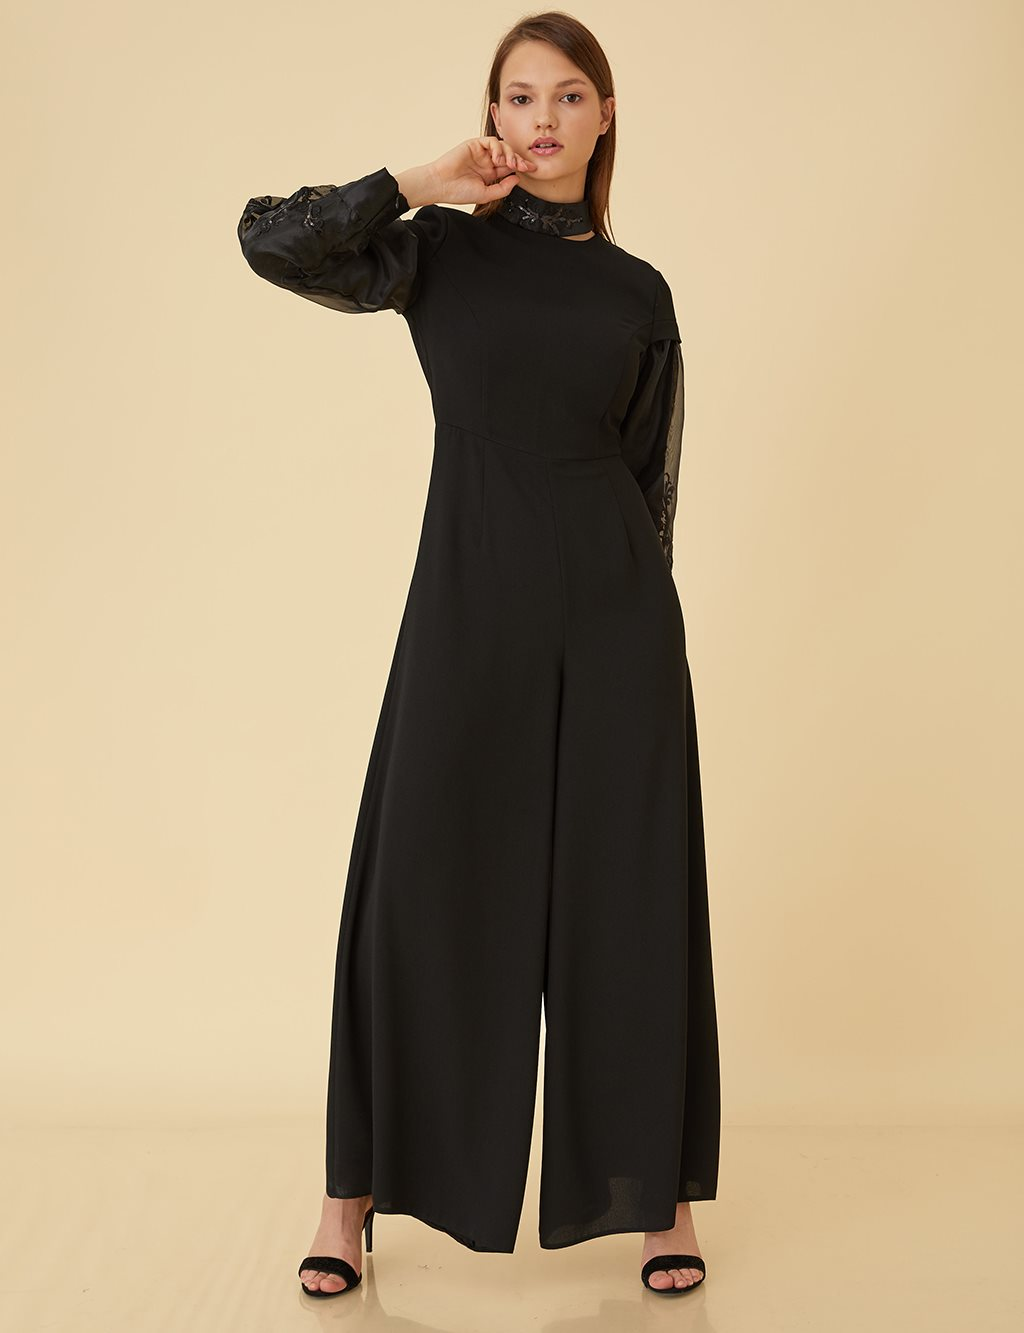 Organza Sleeve Jumpsuit B9 22016 Black